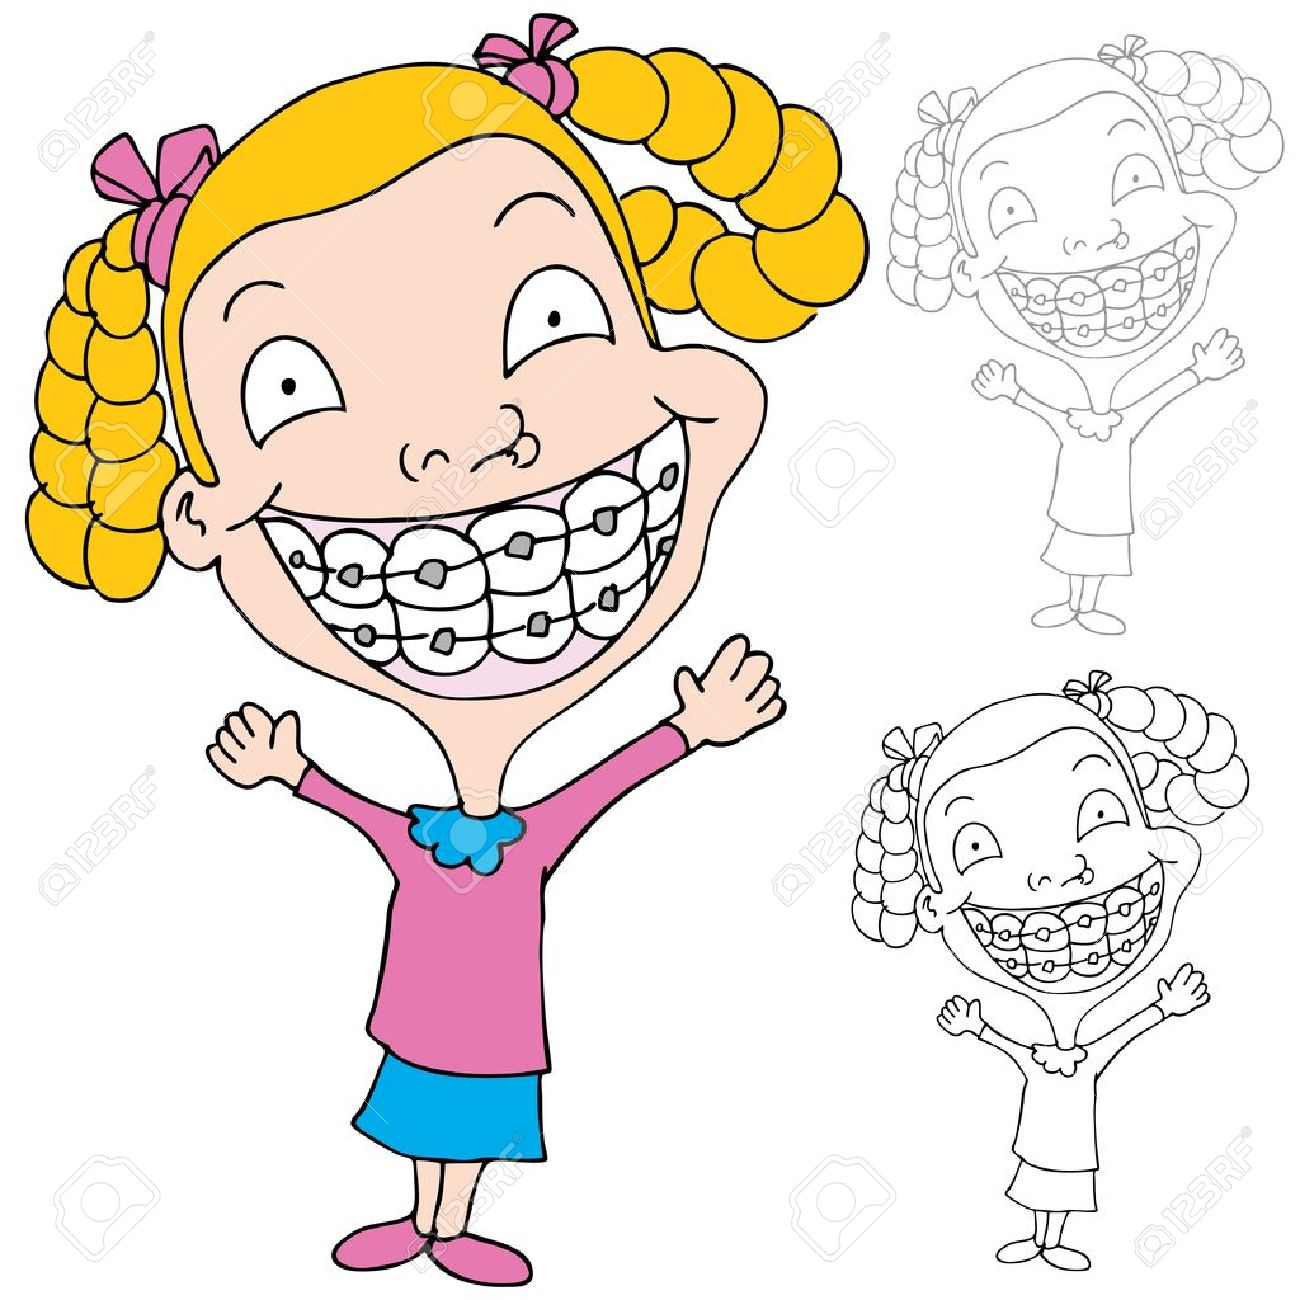 An Image Of A Girl Wearing Braces. Royalty Free Cliparts, Vectors.